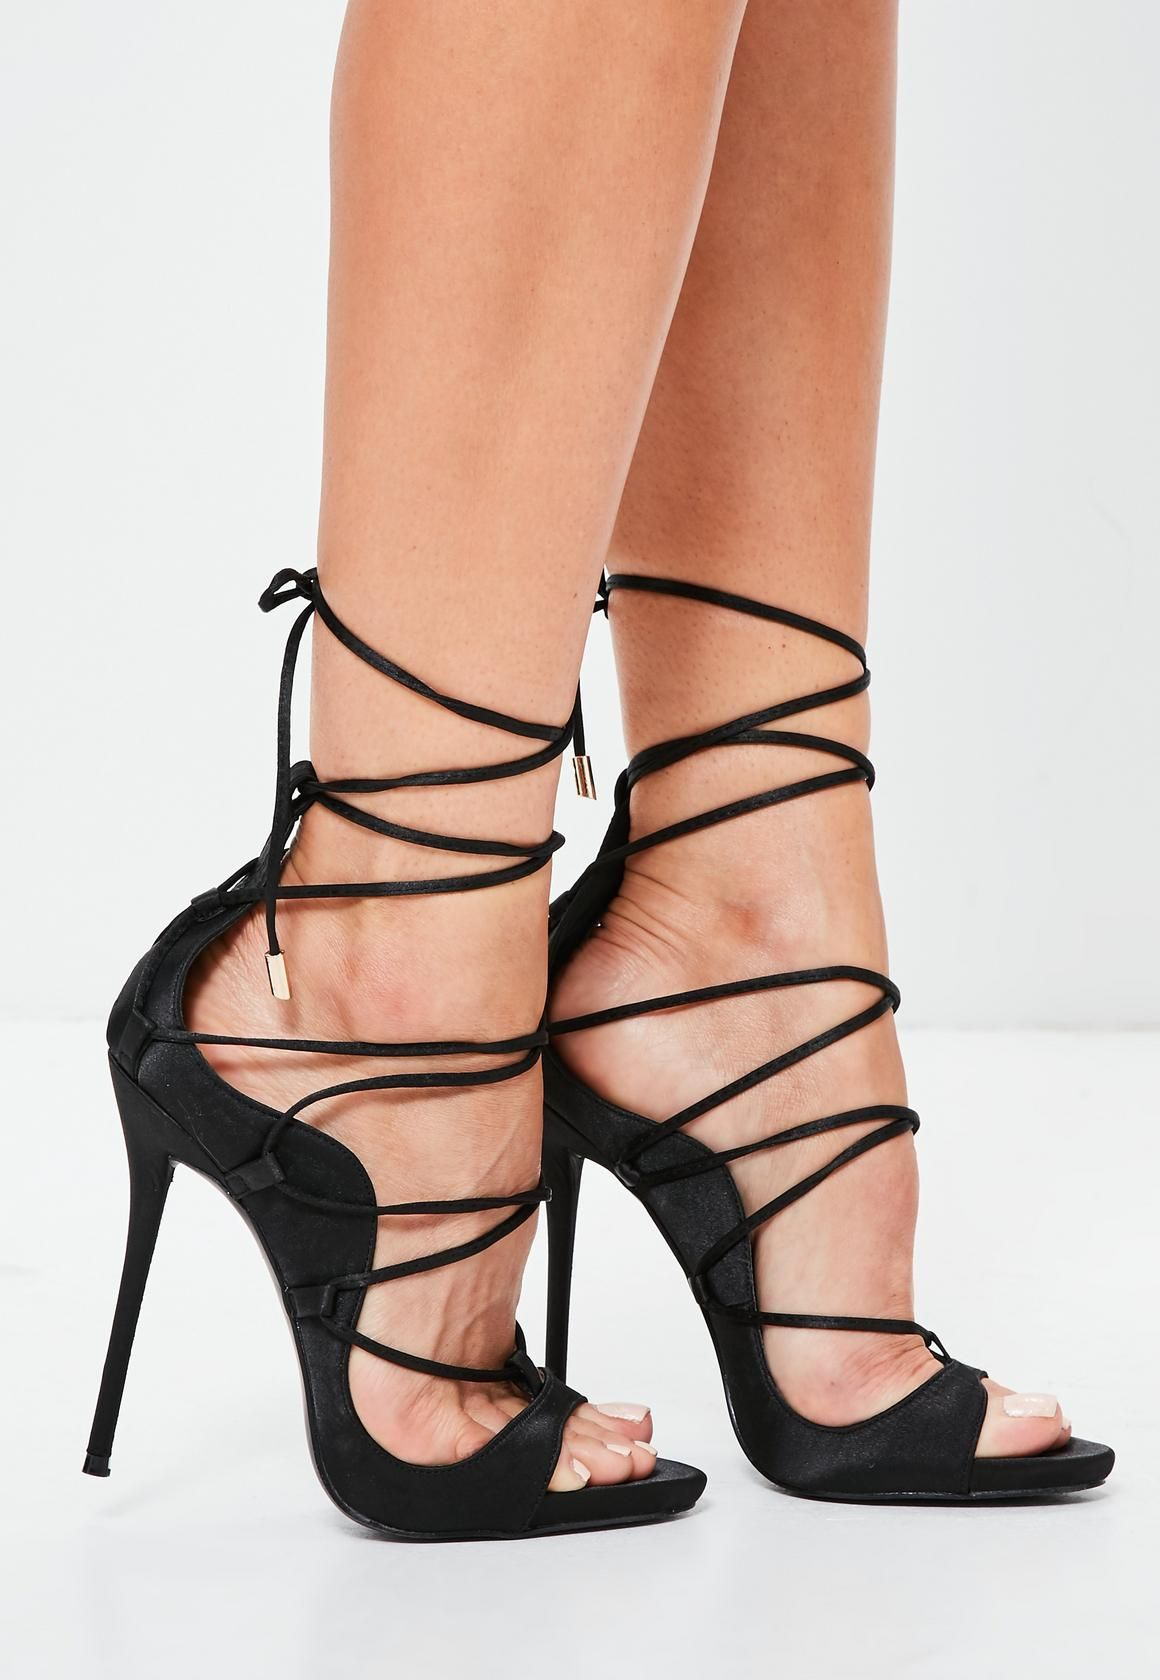 3b6e061ce08 Missguided - Black Satin Gladiator Sandals